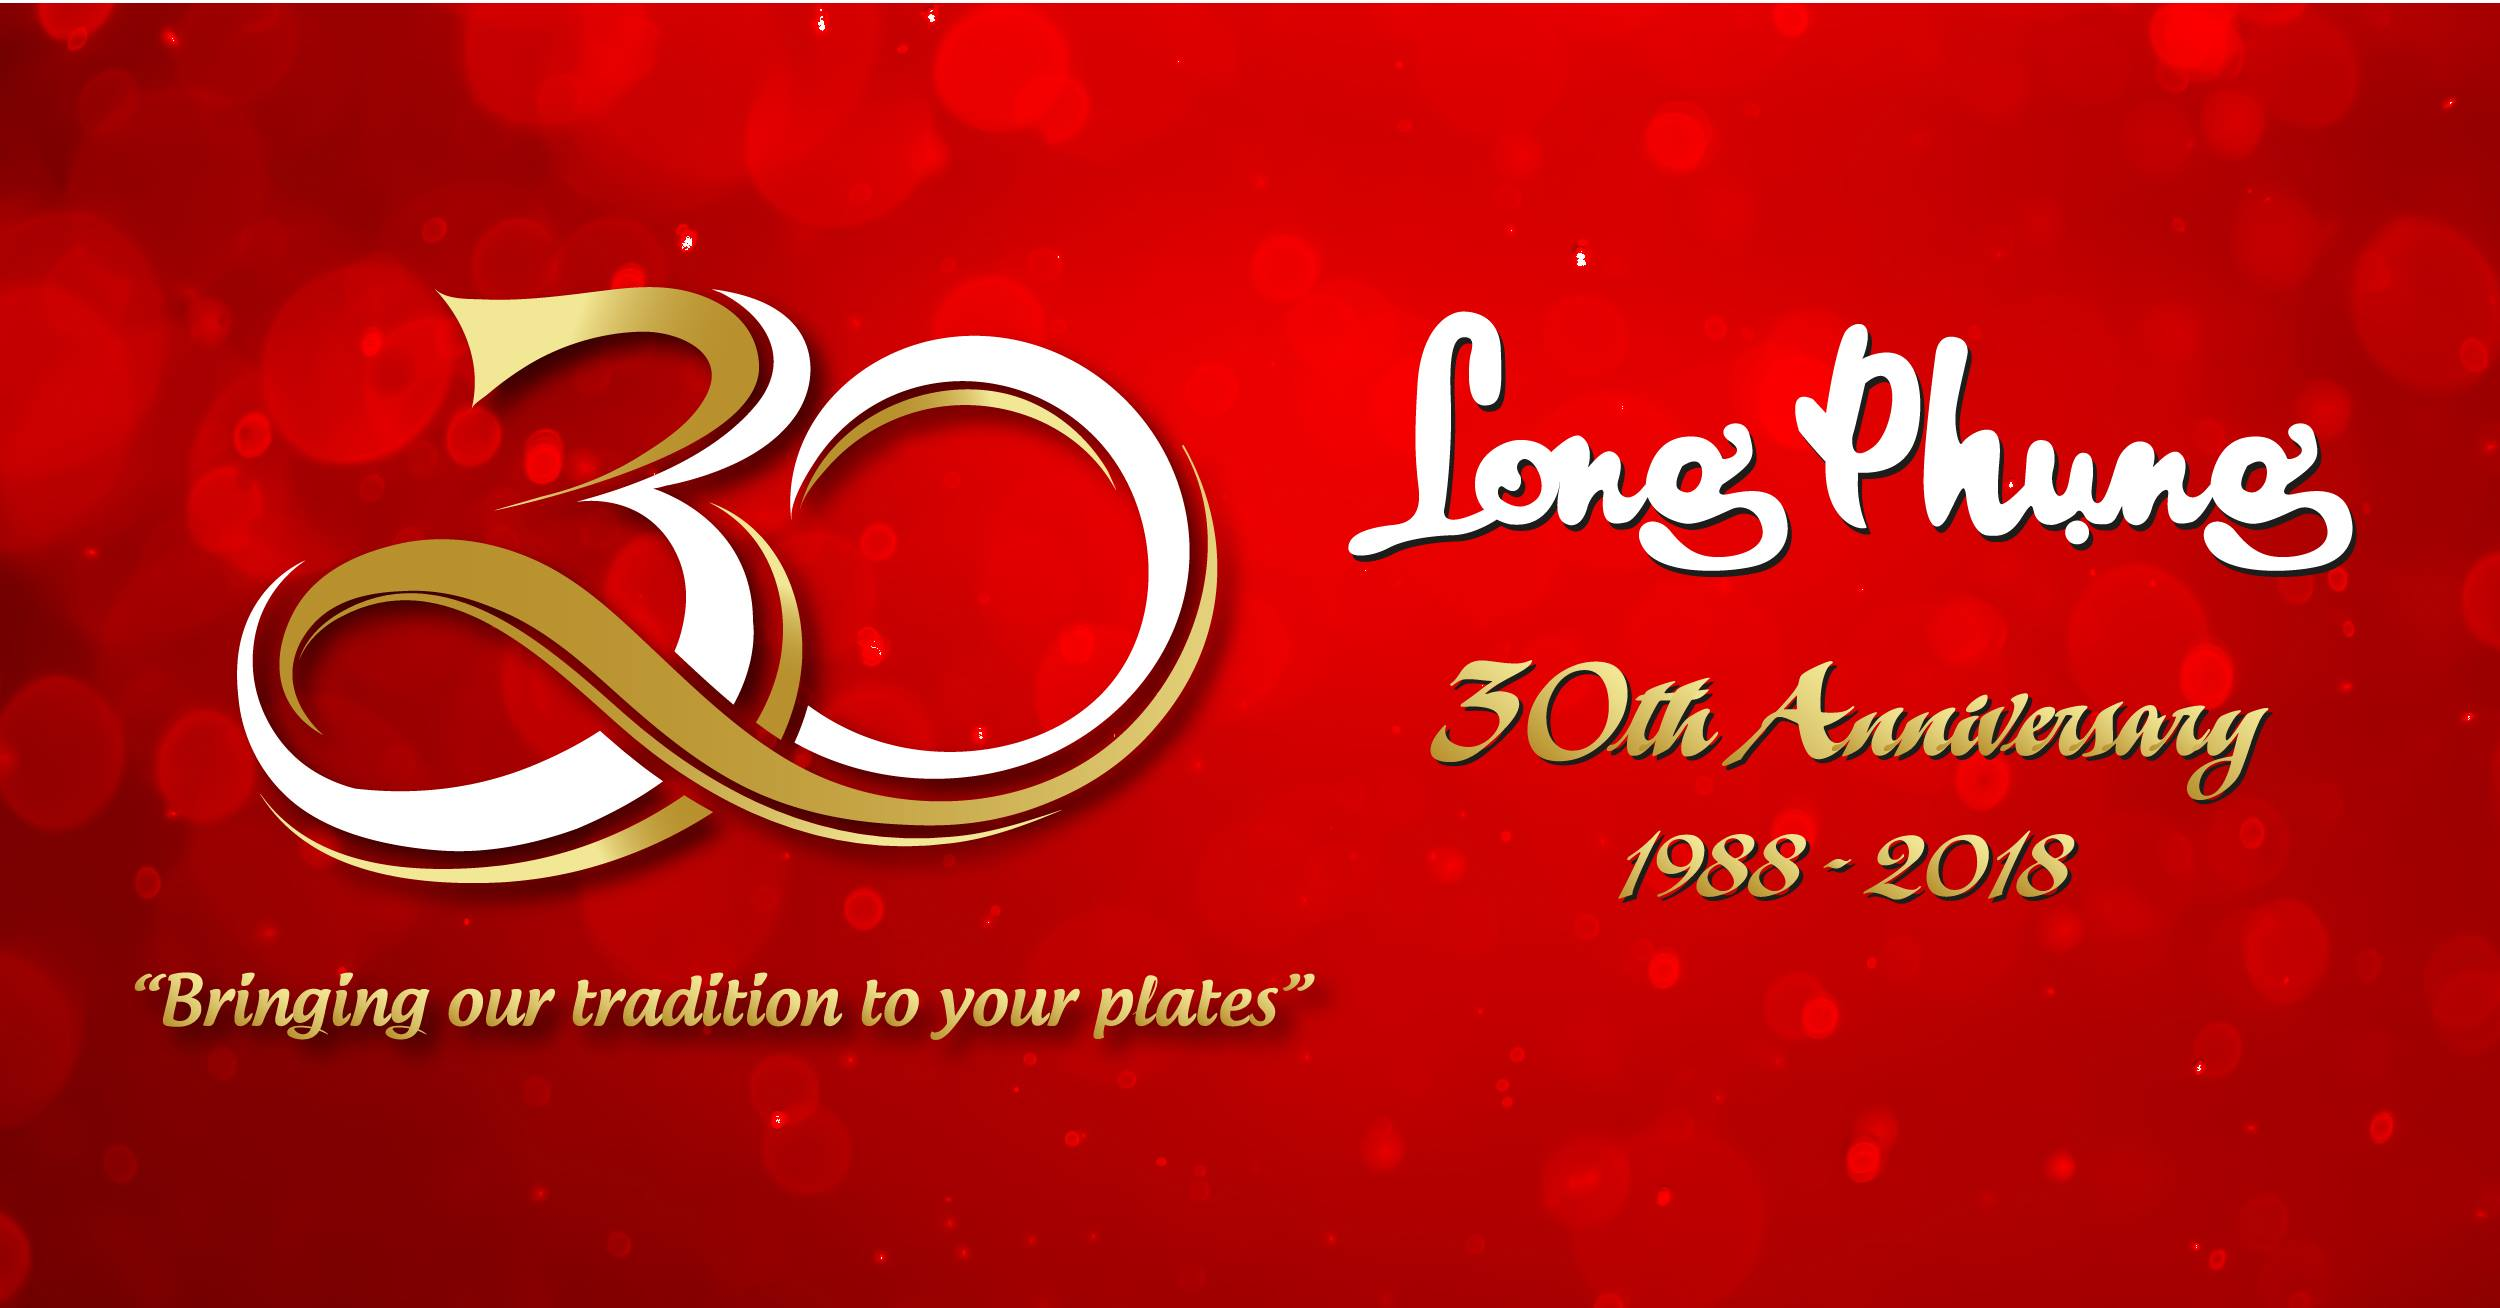 Long Phung 30th Annversary Gala